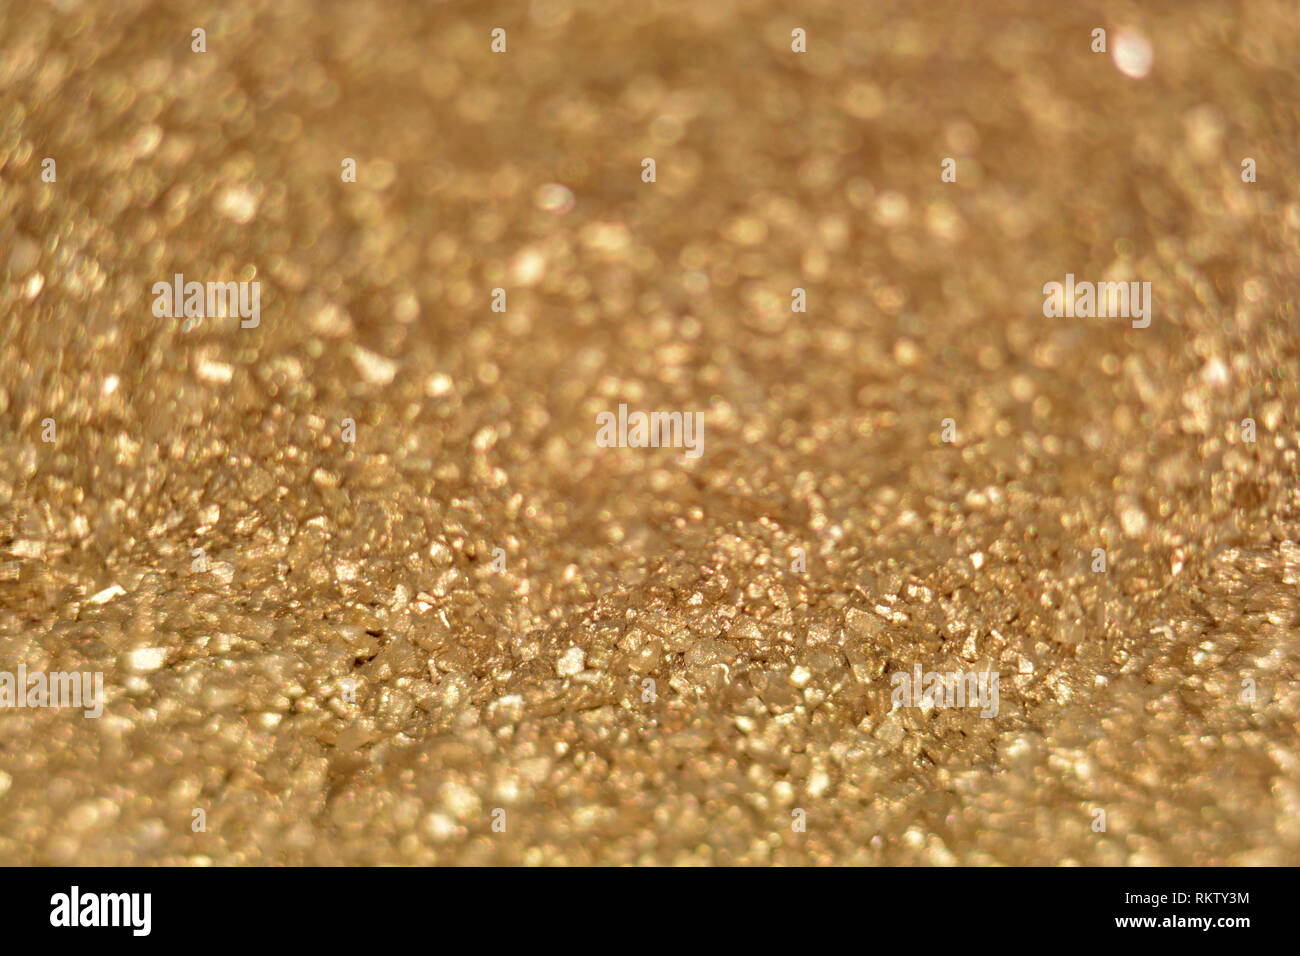 golden shimmer glitter texture with copy space, defocused golden glitter background with bokeh effects - Stock Image